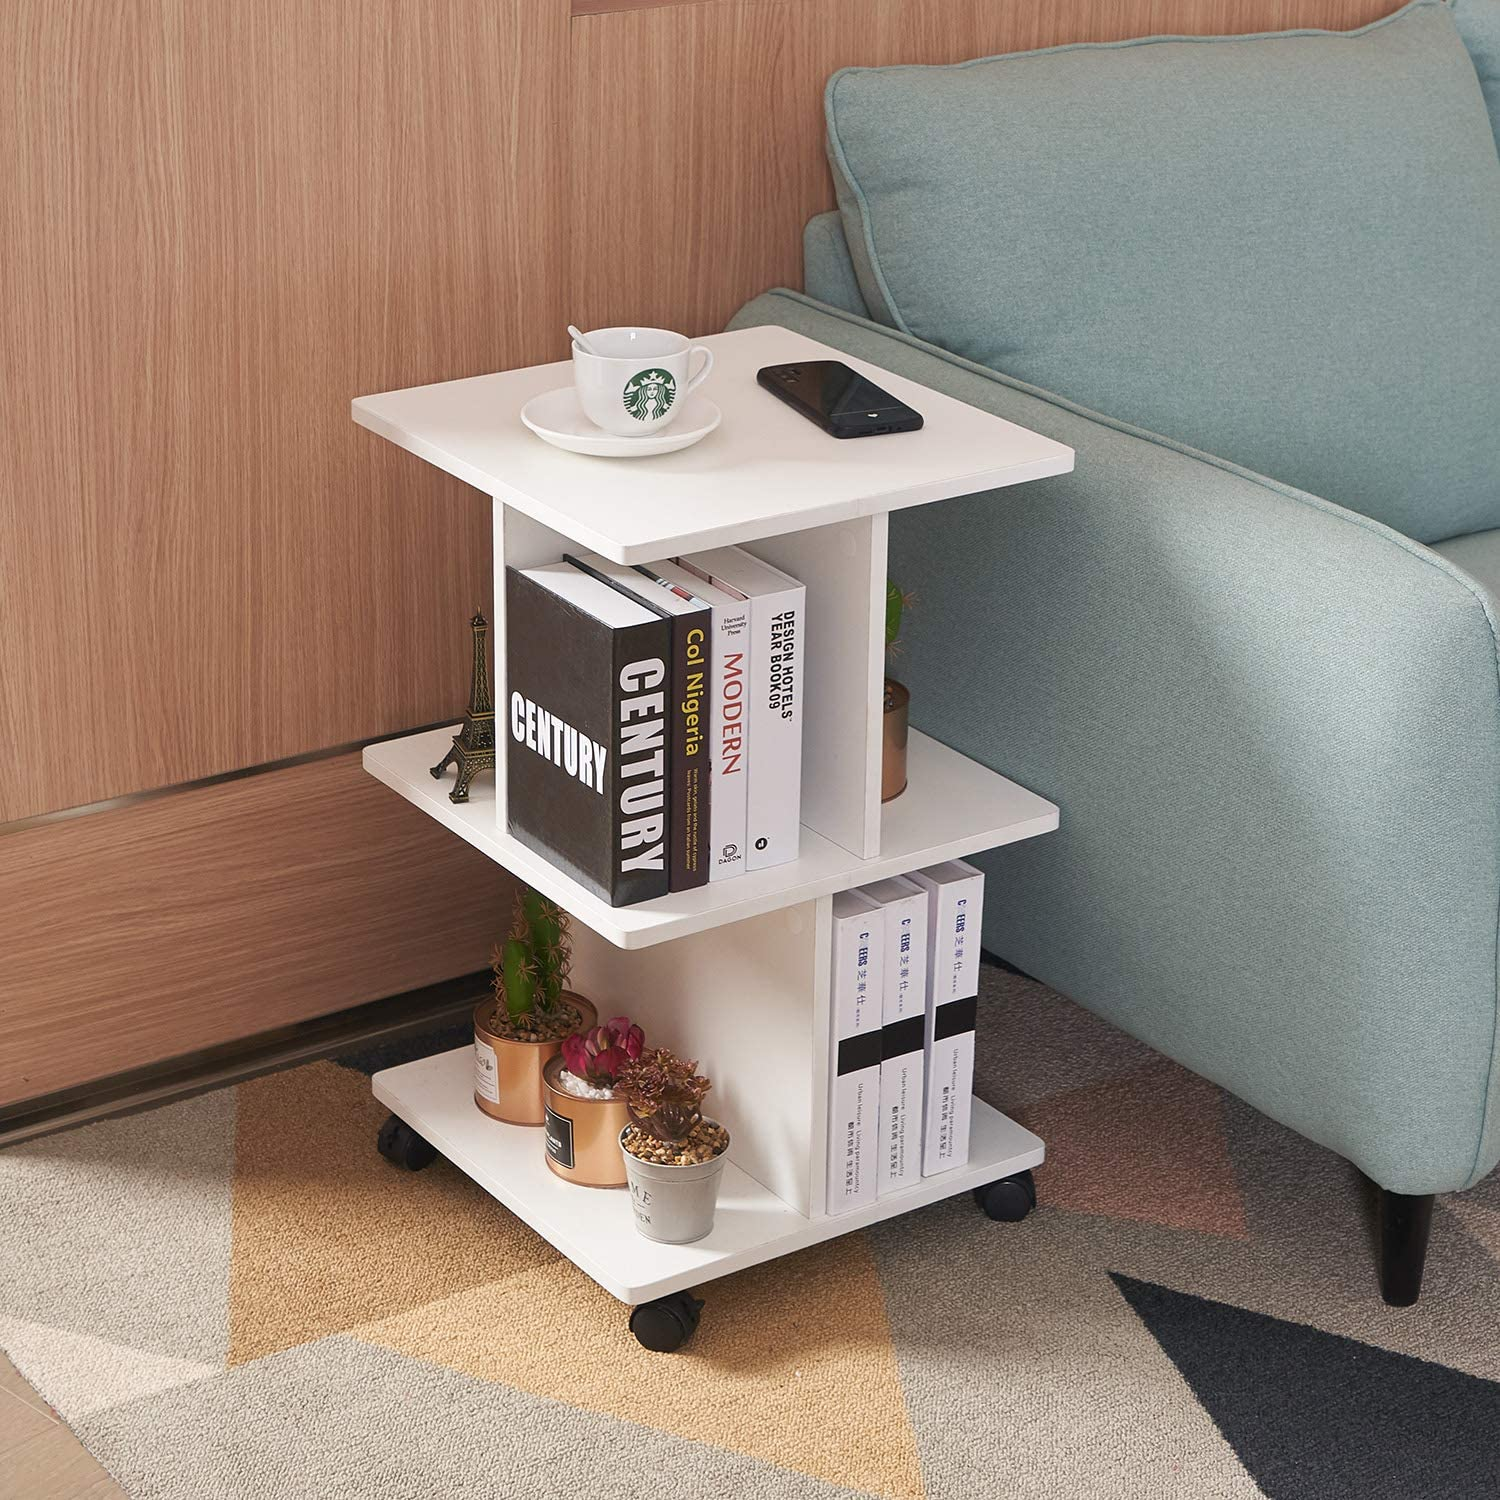 NXN-HOME Modern End Table 3 Tier Bedside Table Night Stand with Wheels and Storage Shelf for Living Room White Bedroom